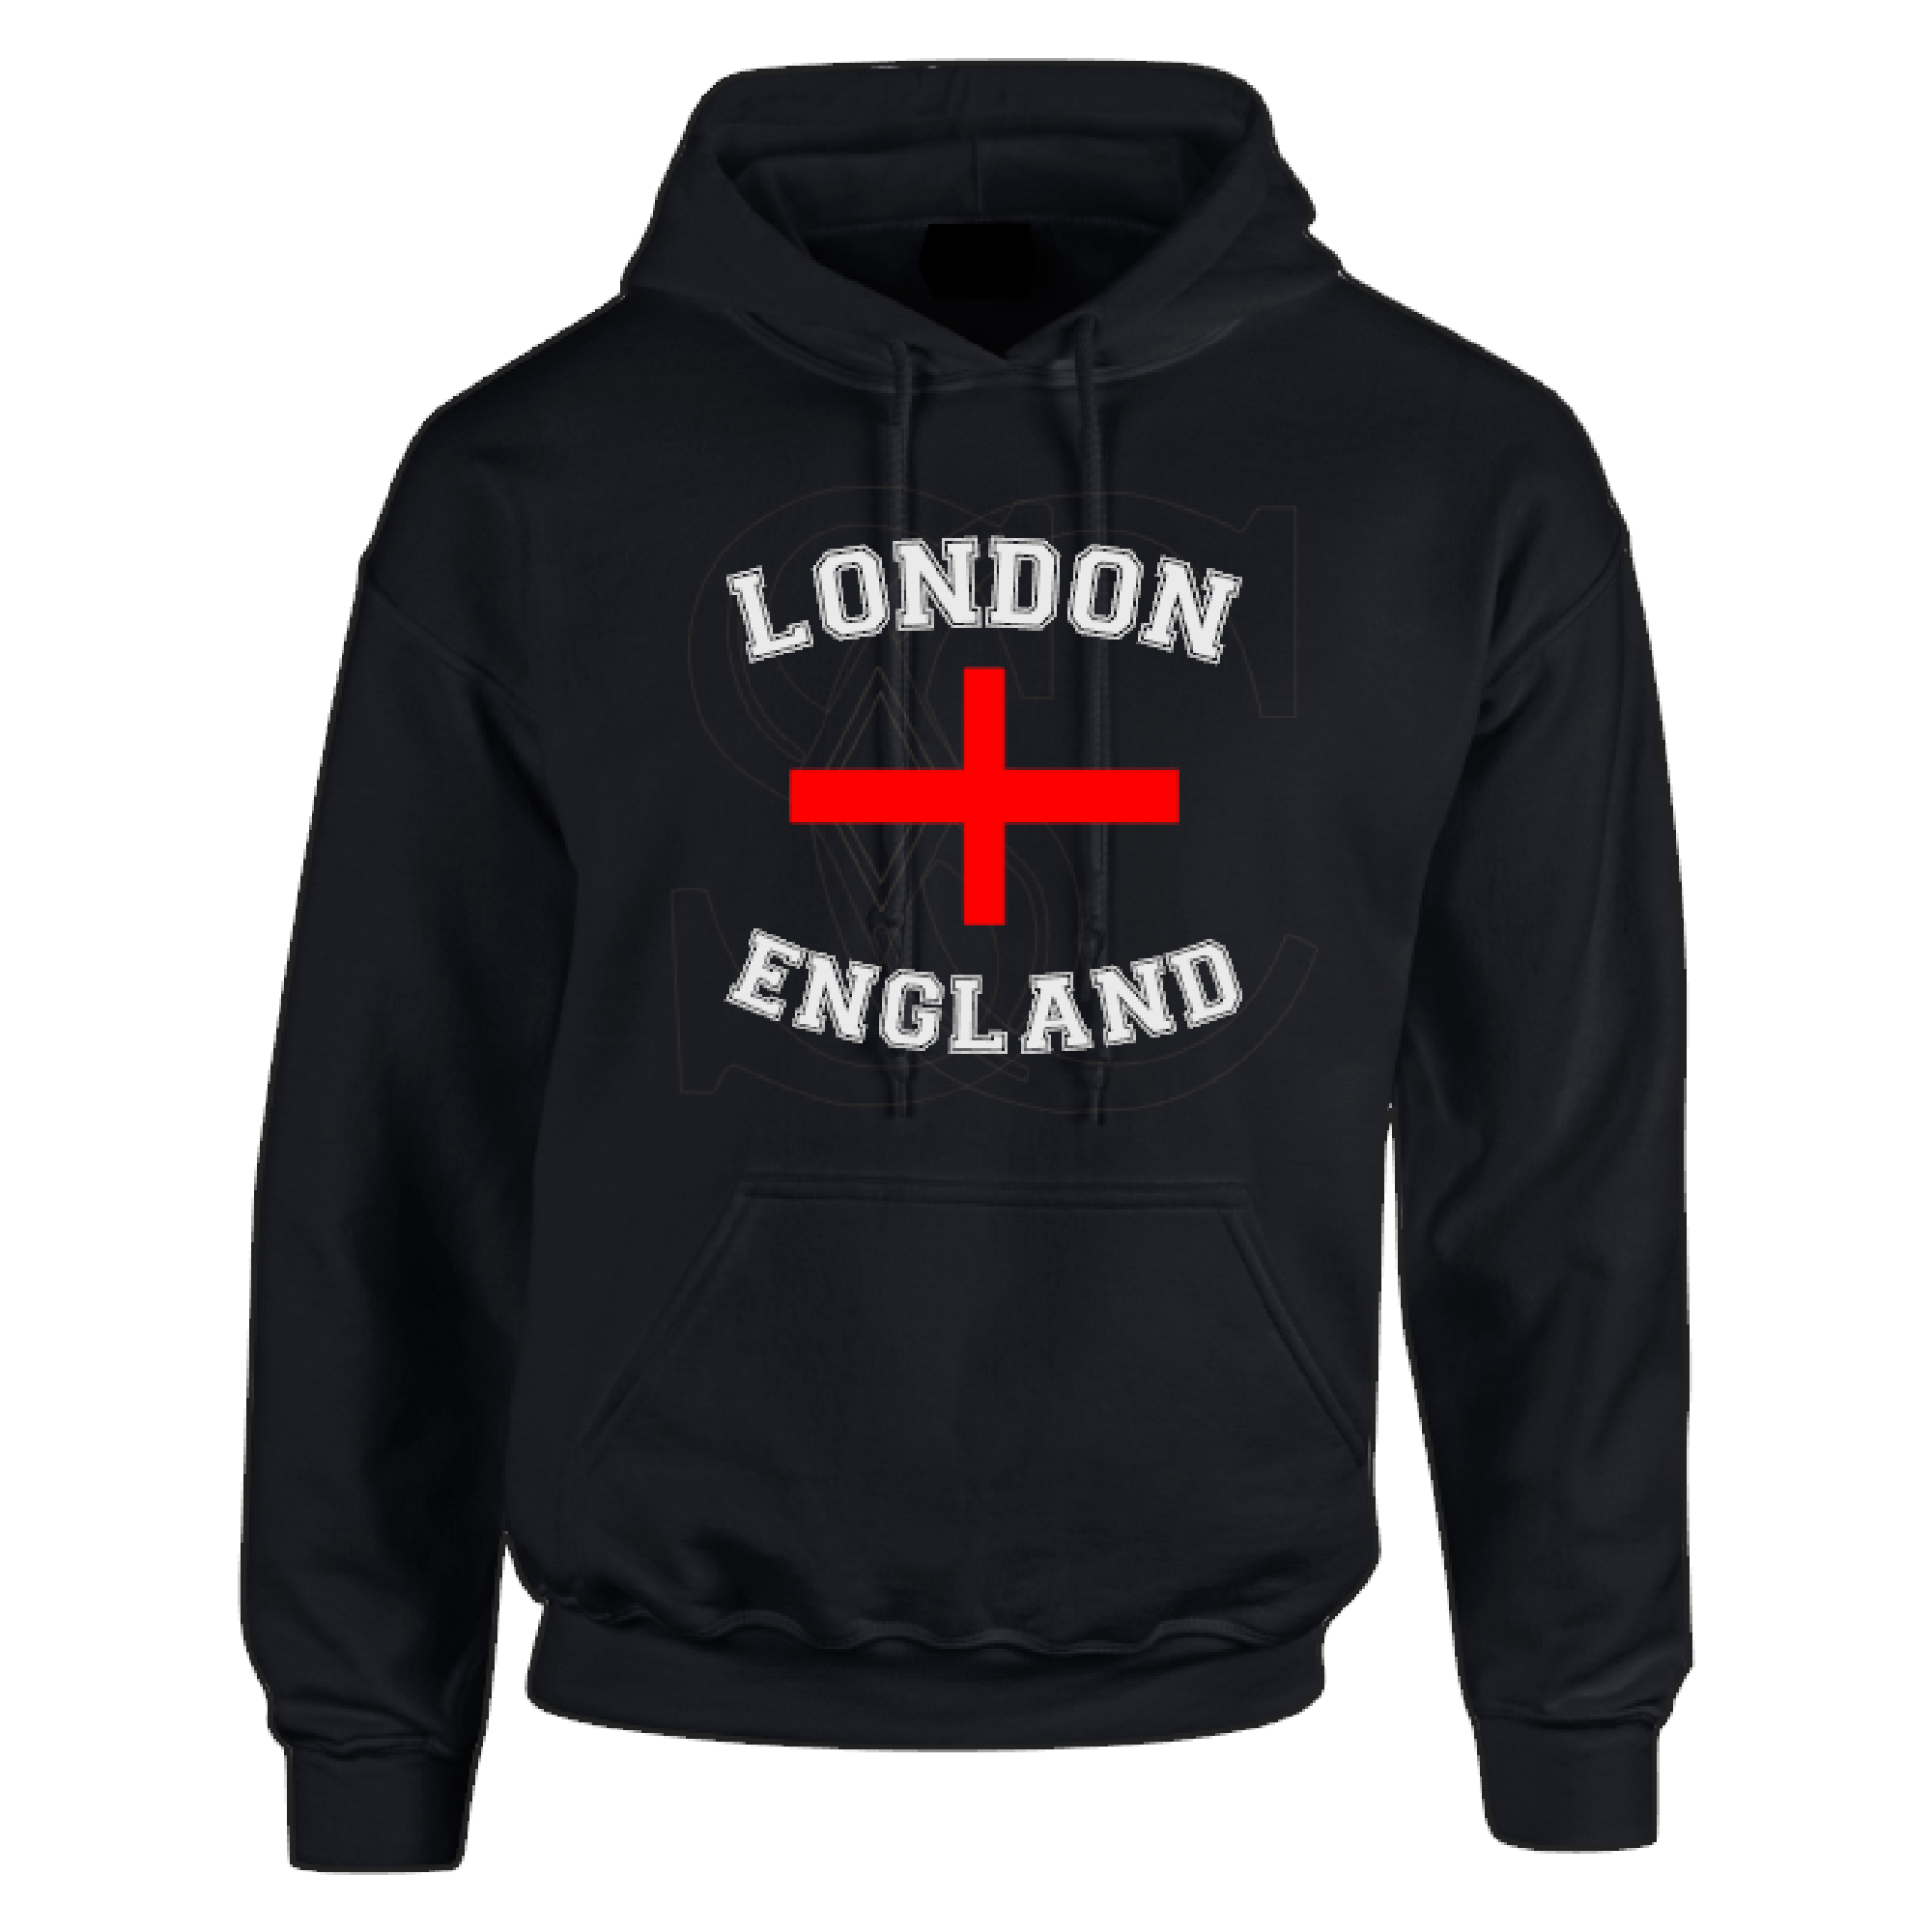 London England with st.georges cross  Unisex Hoodie